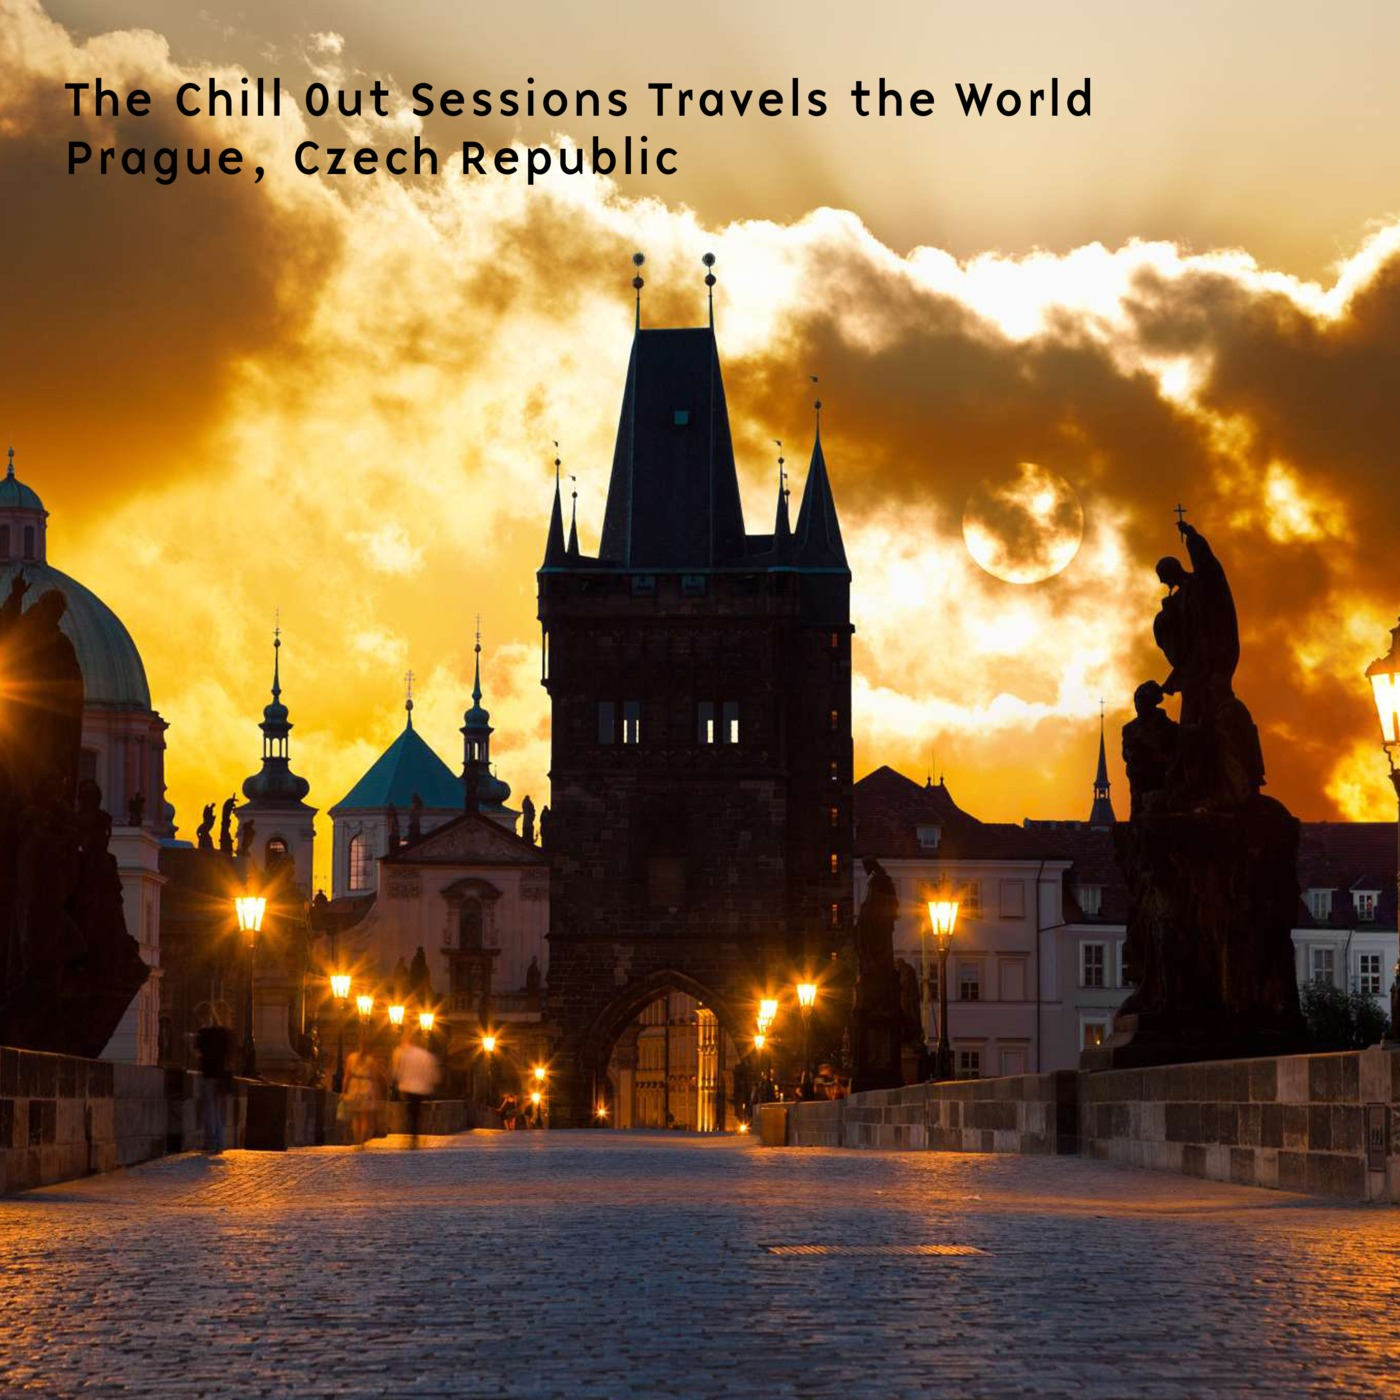 The Chill Out Sessions Travels The World - Prague, Czech Republic